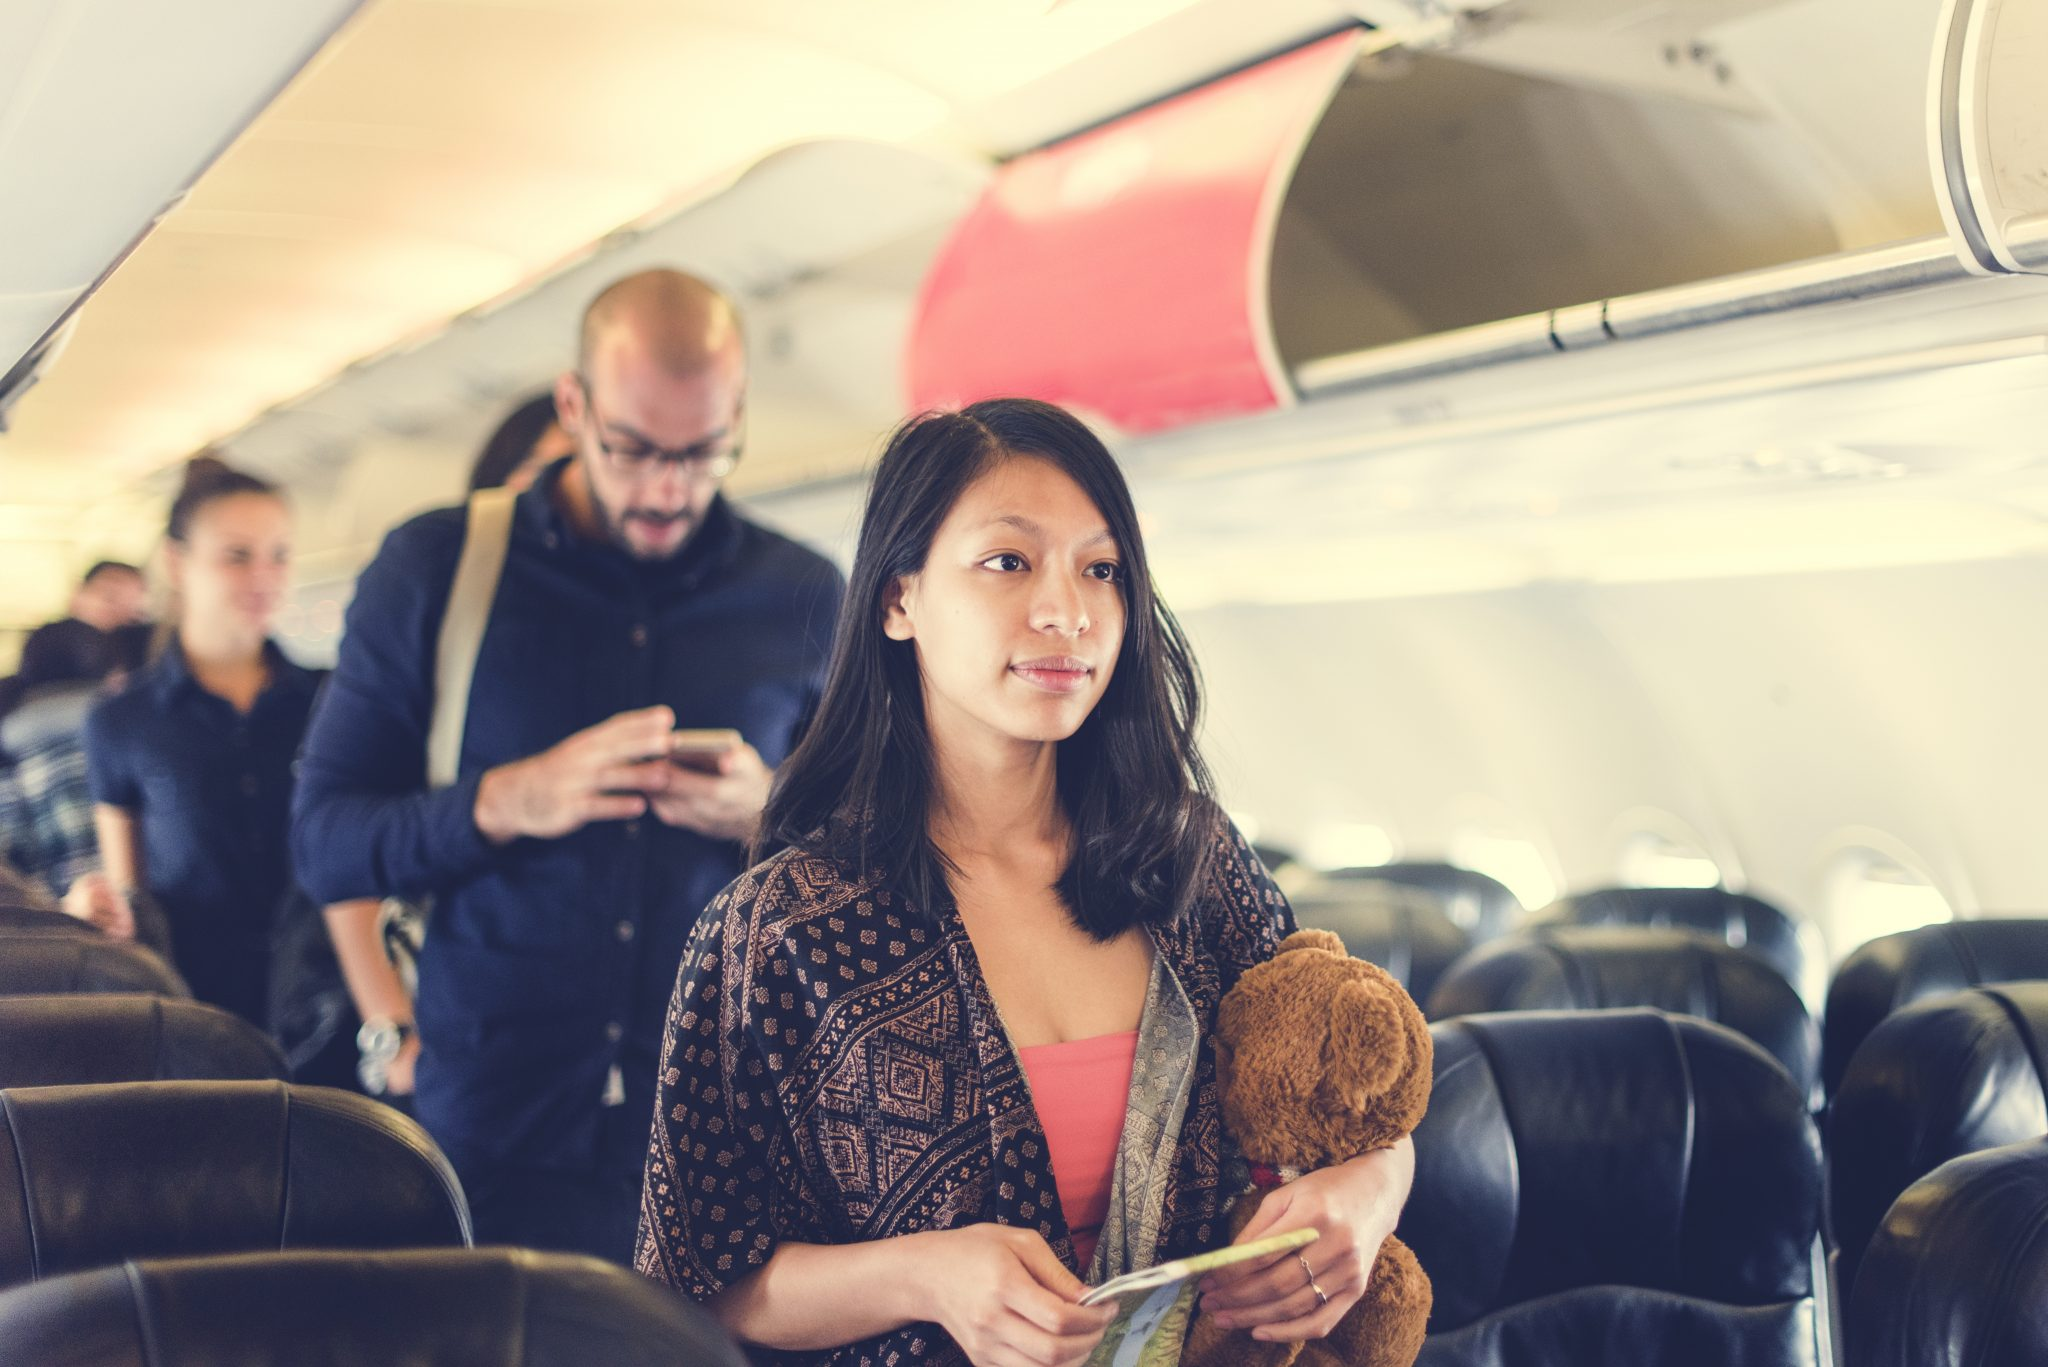 Refresh Your Travel Skills - Know Before You Go